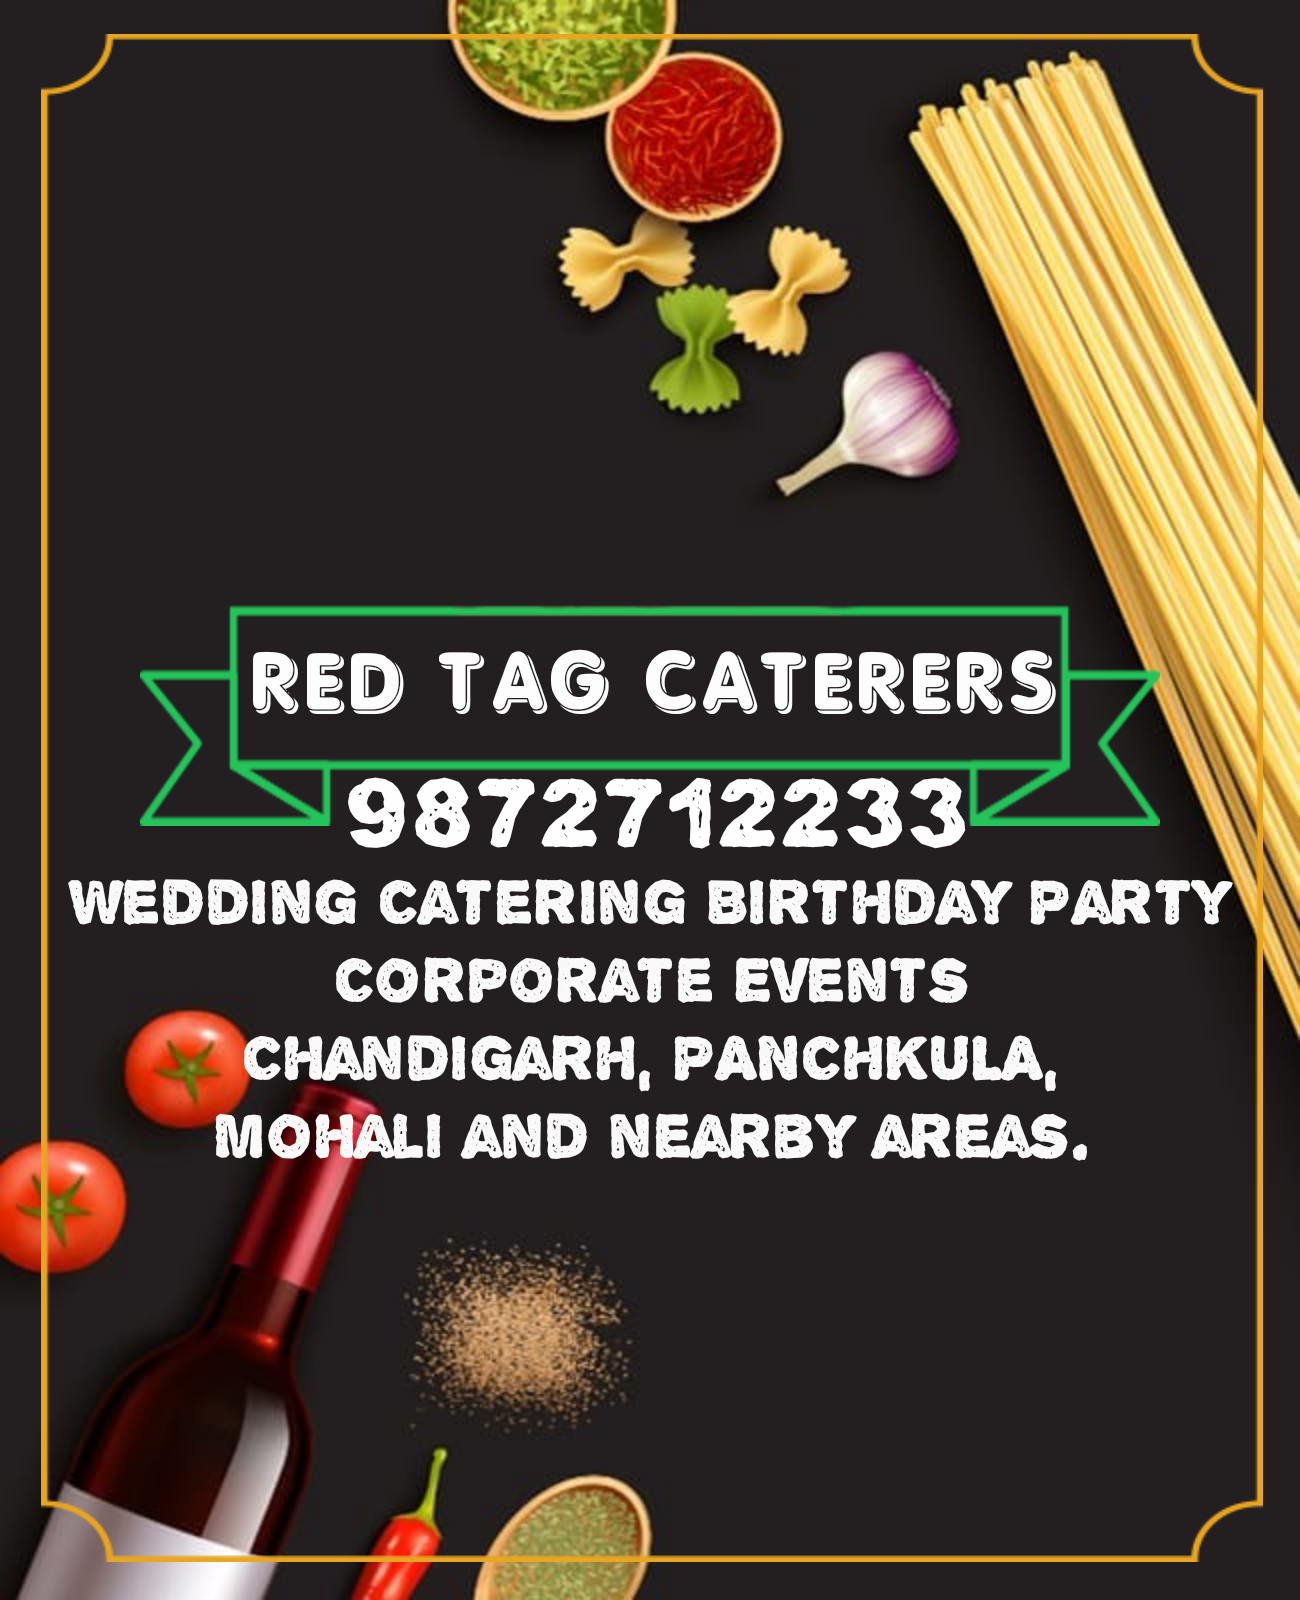 Red Tag Caterers, Best Caterers in Panchkula